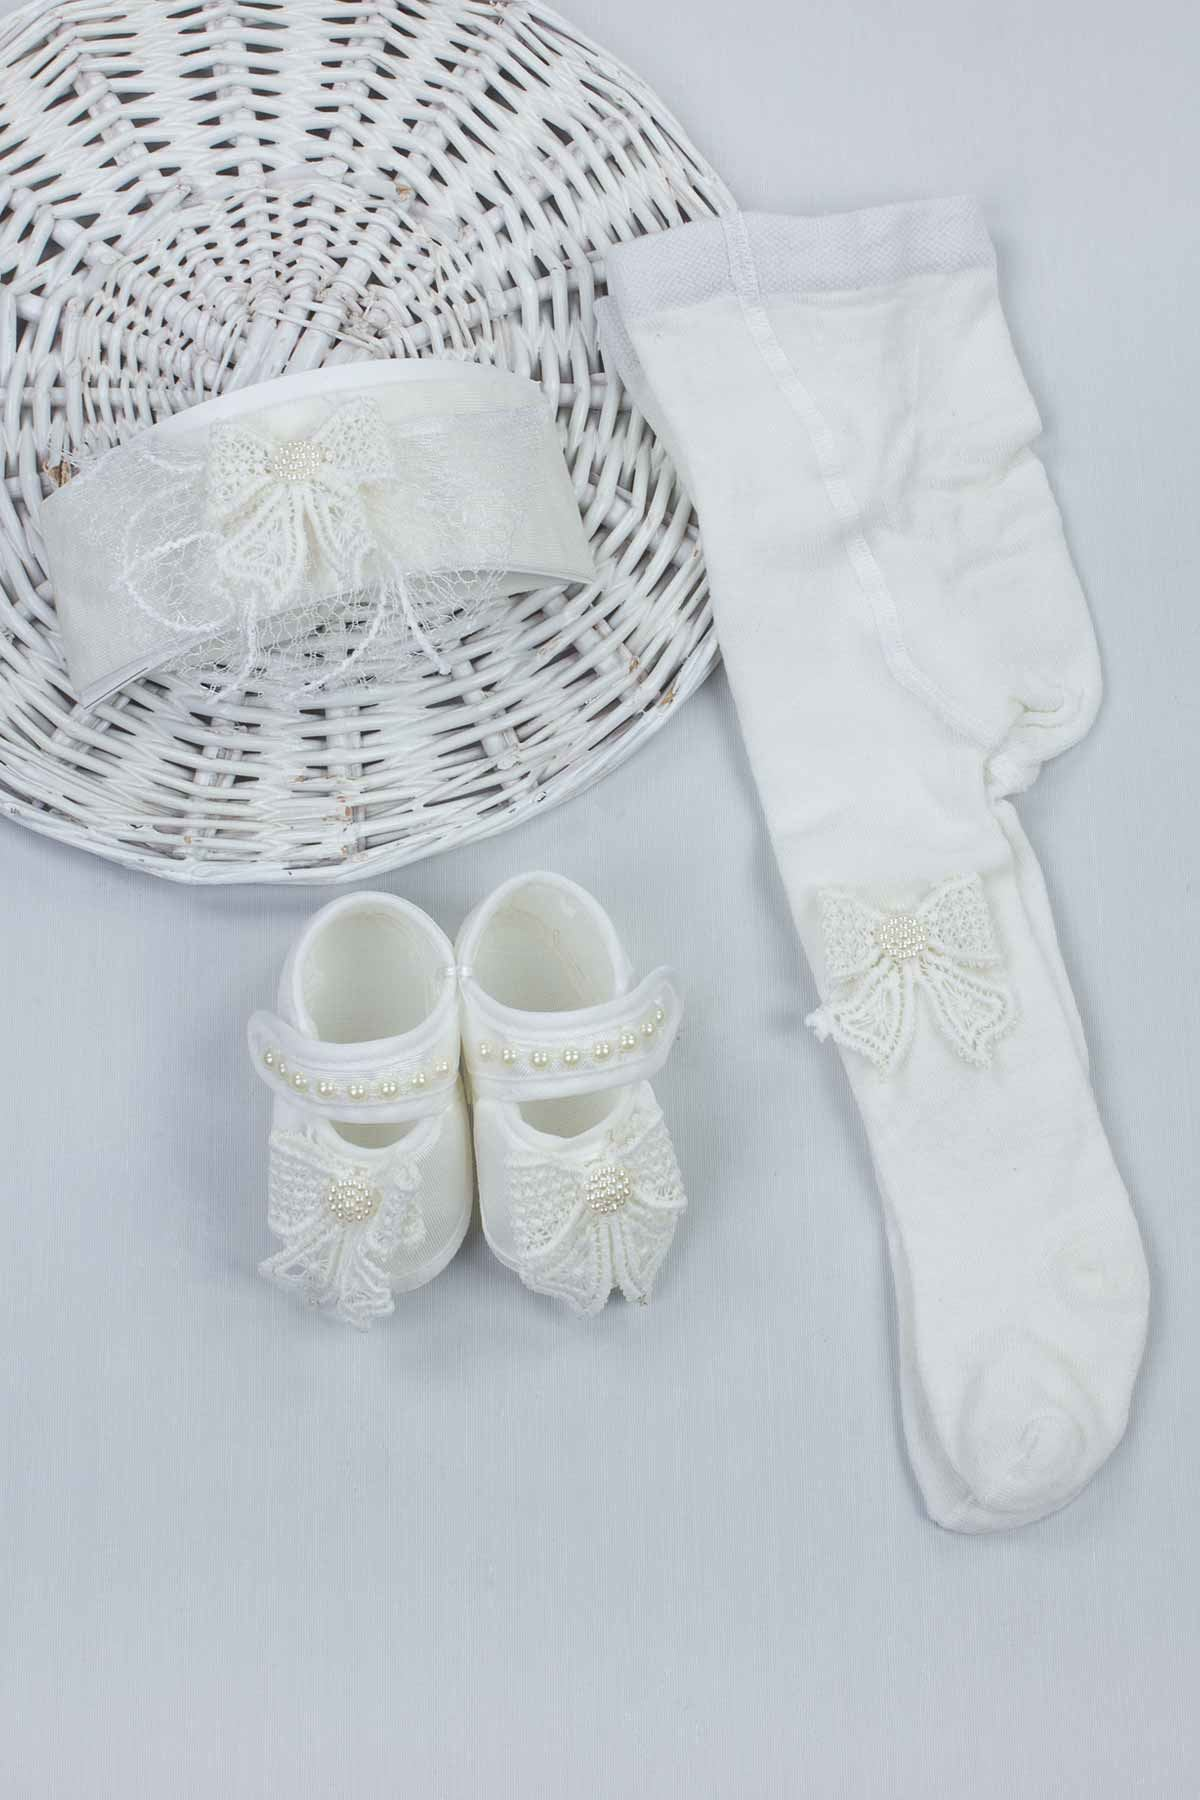 White Baby Girl Newborn Gift Suit Set Girls Babies Tights Stockings Hair Bandanas Shoes Fashion Style 2021 Mom Gift Package